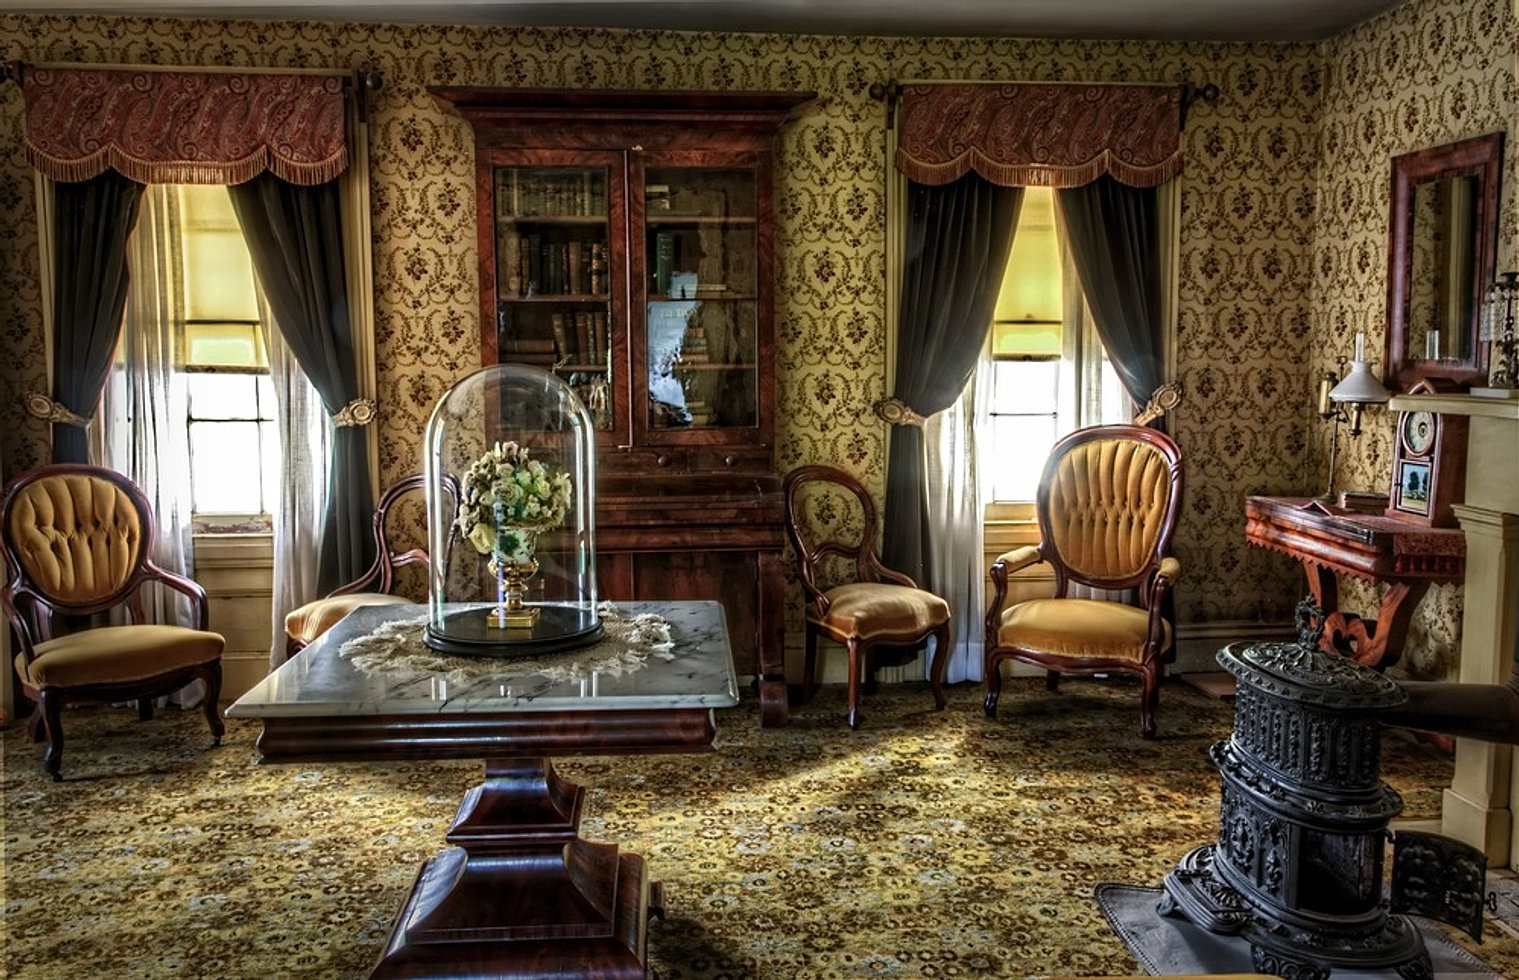 Buy And Sell Antique Furniture Antique Furniture - Antique Furniture Buy And Sell